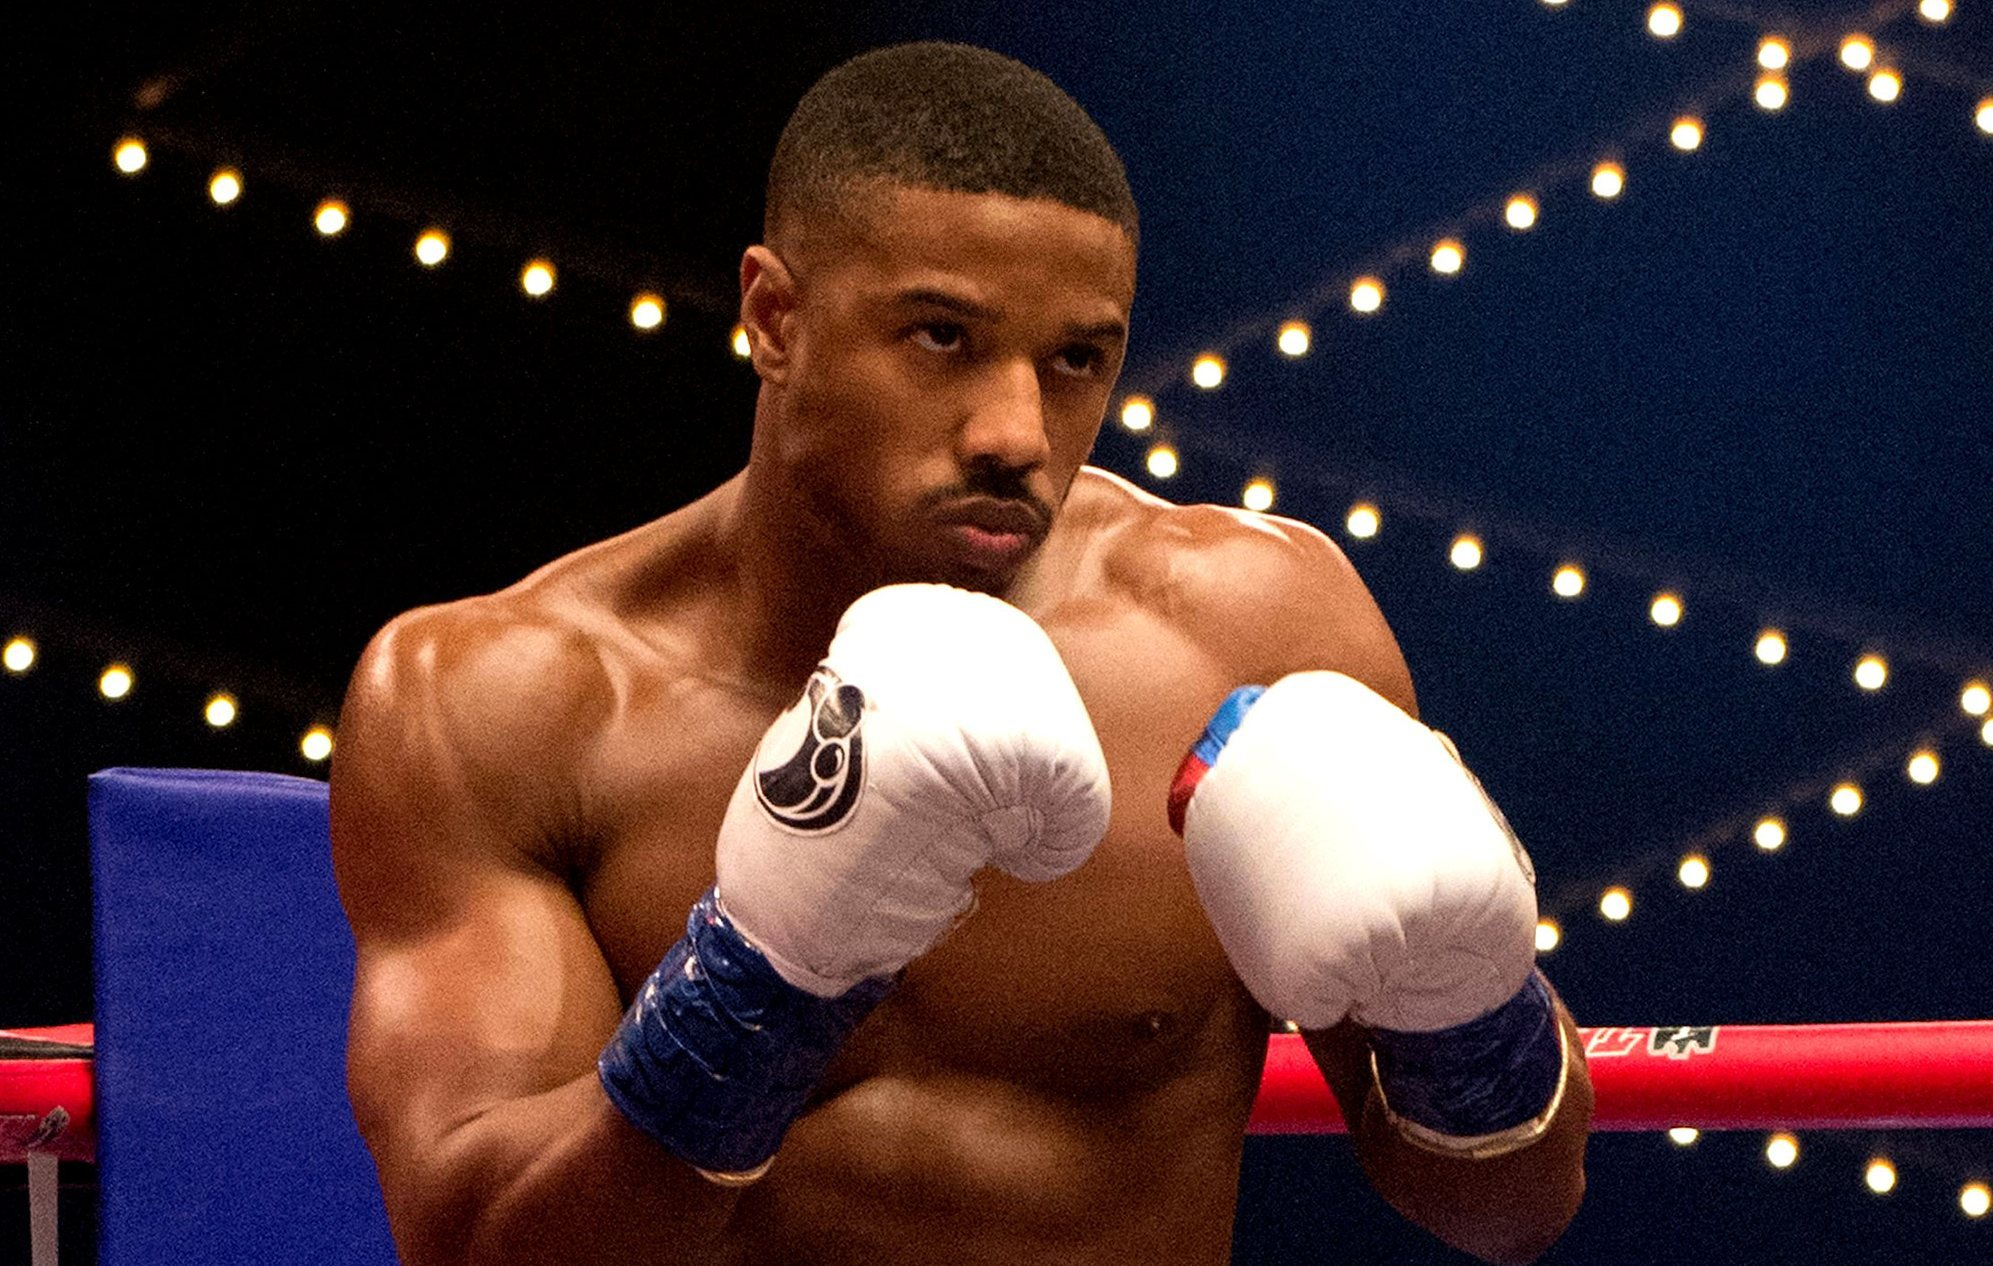 Creed 3: Everything We Know About Michael B. Jordan's Directorial Debut